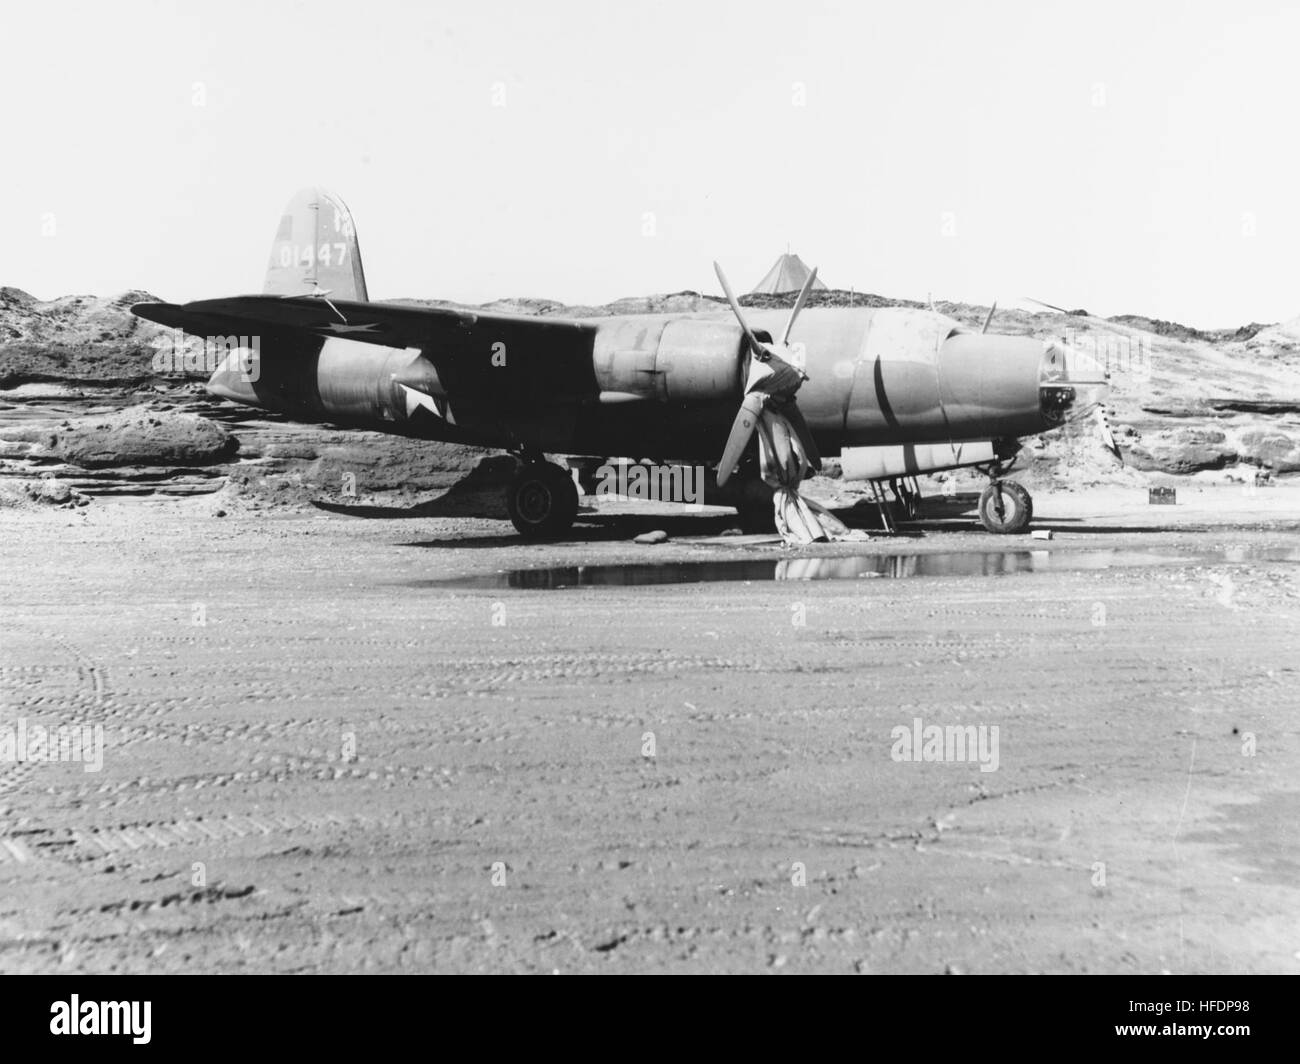 Bomb Bay Black And White Stock Photos Images Alamy B 26 Marauder Engine Diagram Photo 80 G 246587 Us Army Air Forces Martin